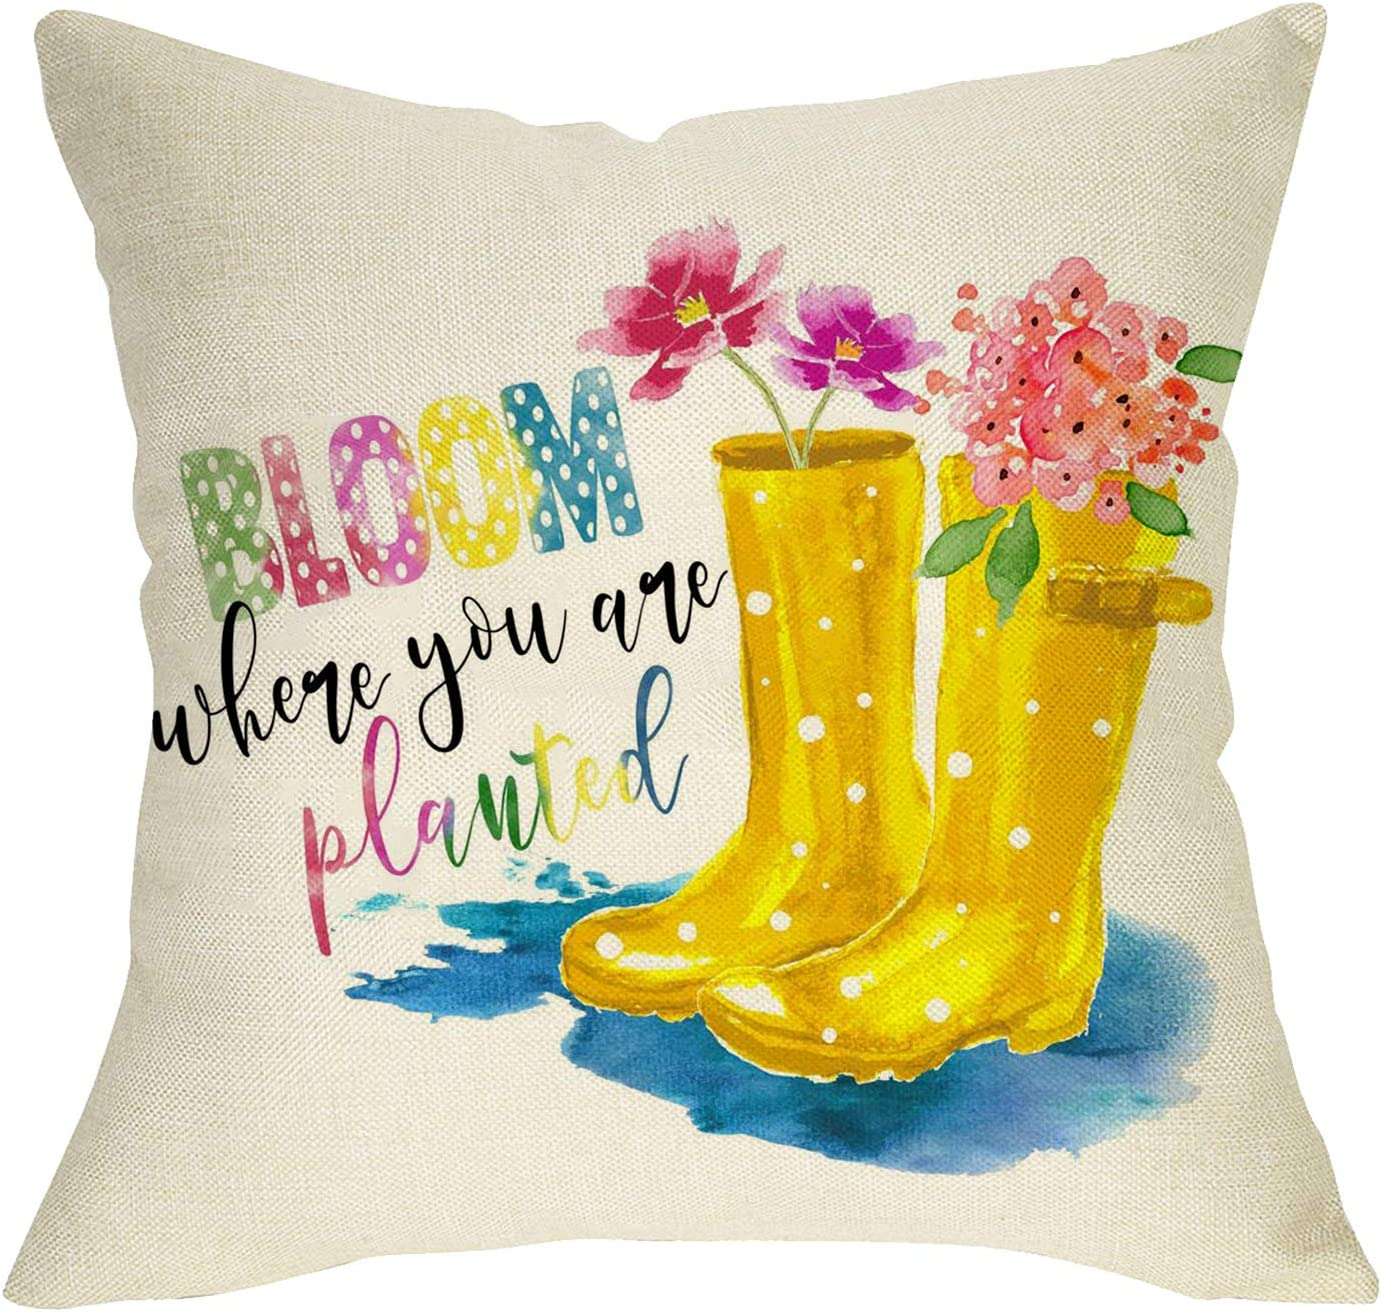 Softxpp Spring Flowers Decorative Throw Pillow Cover, Bloom When You are Planted Sign Cushion Case, Home Rain Boots Farmhouse Decorations Cotton Linen Square Pillowcase Decor for Sofa Couch 18 x 18